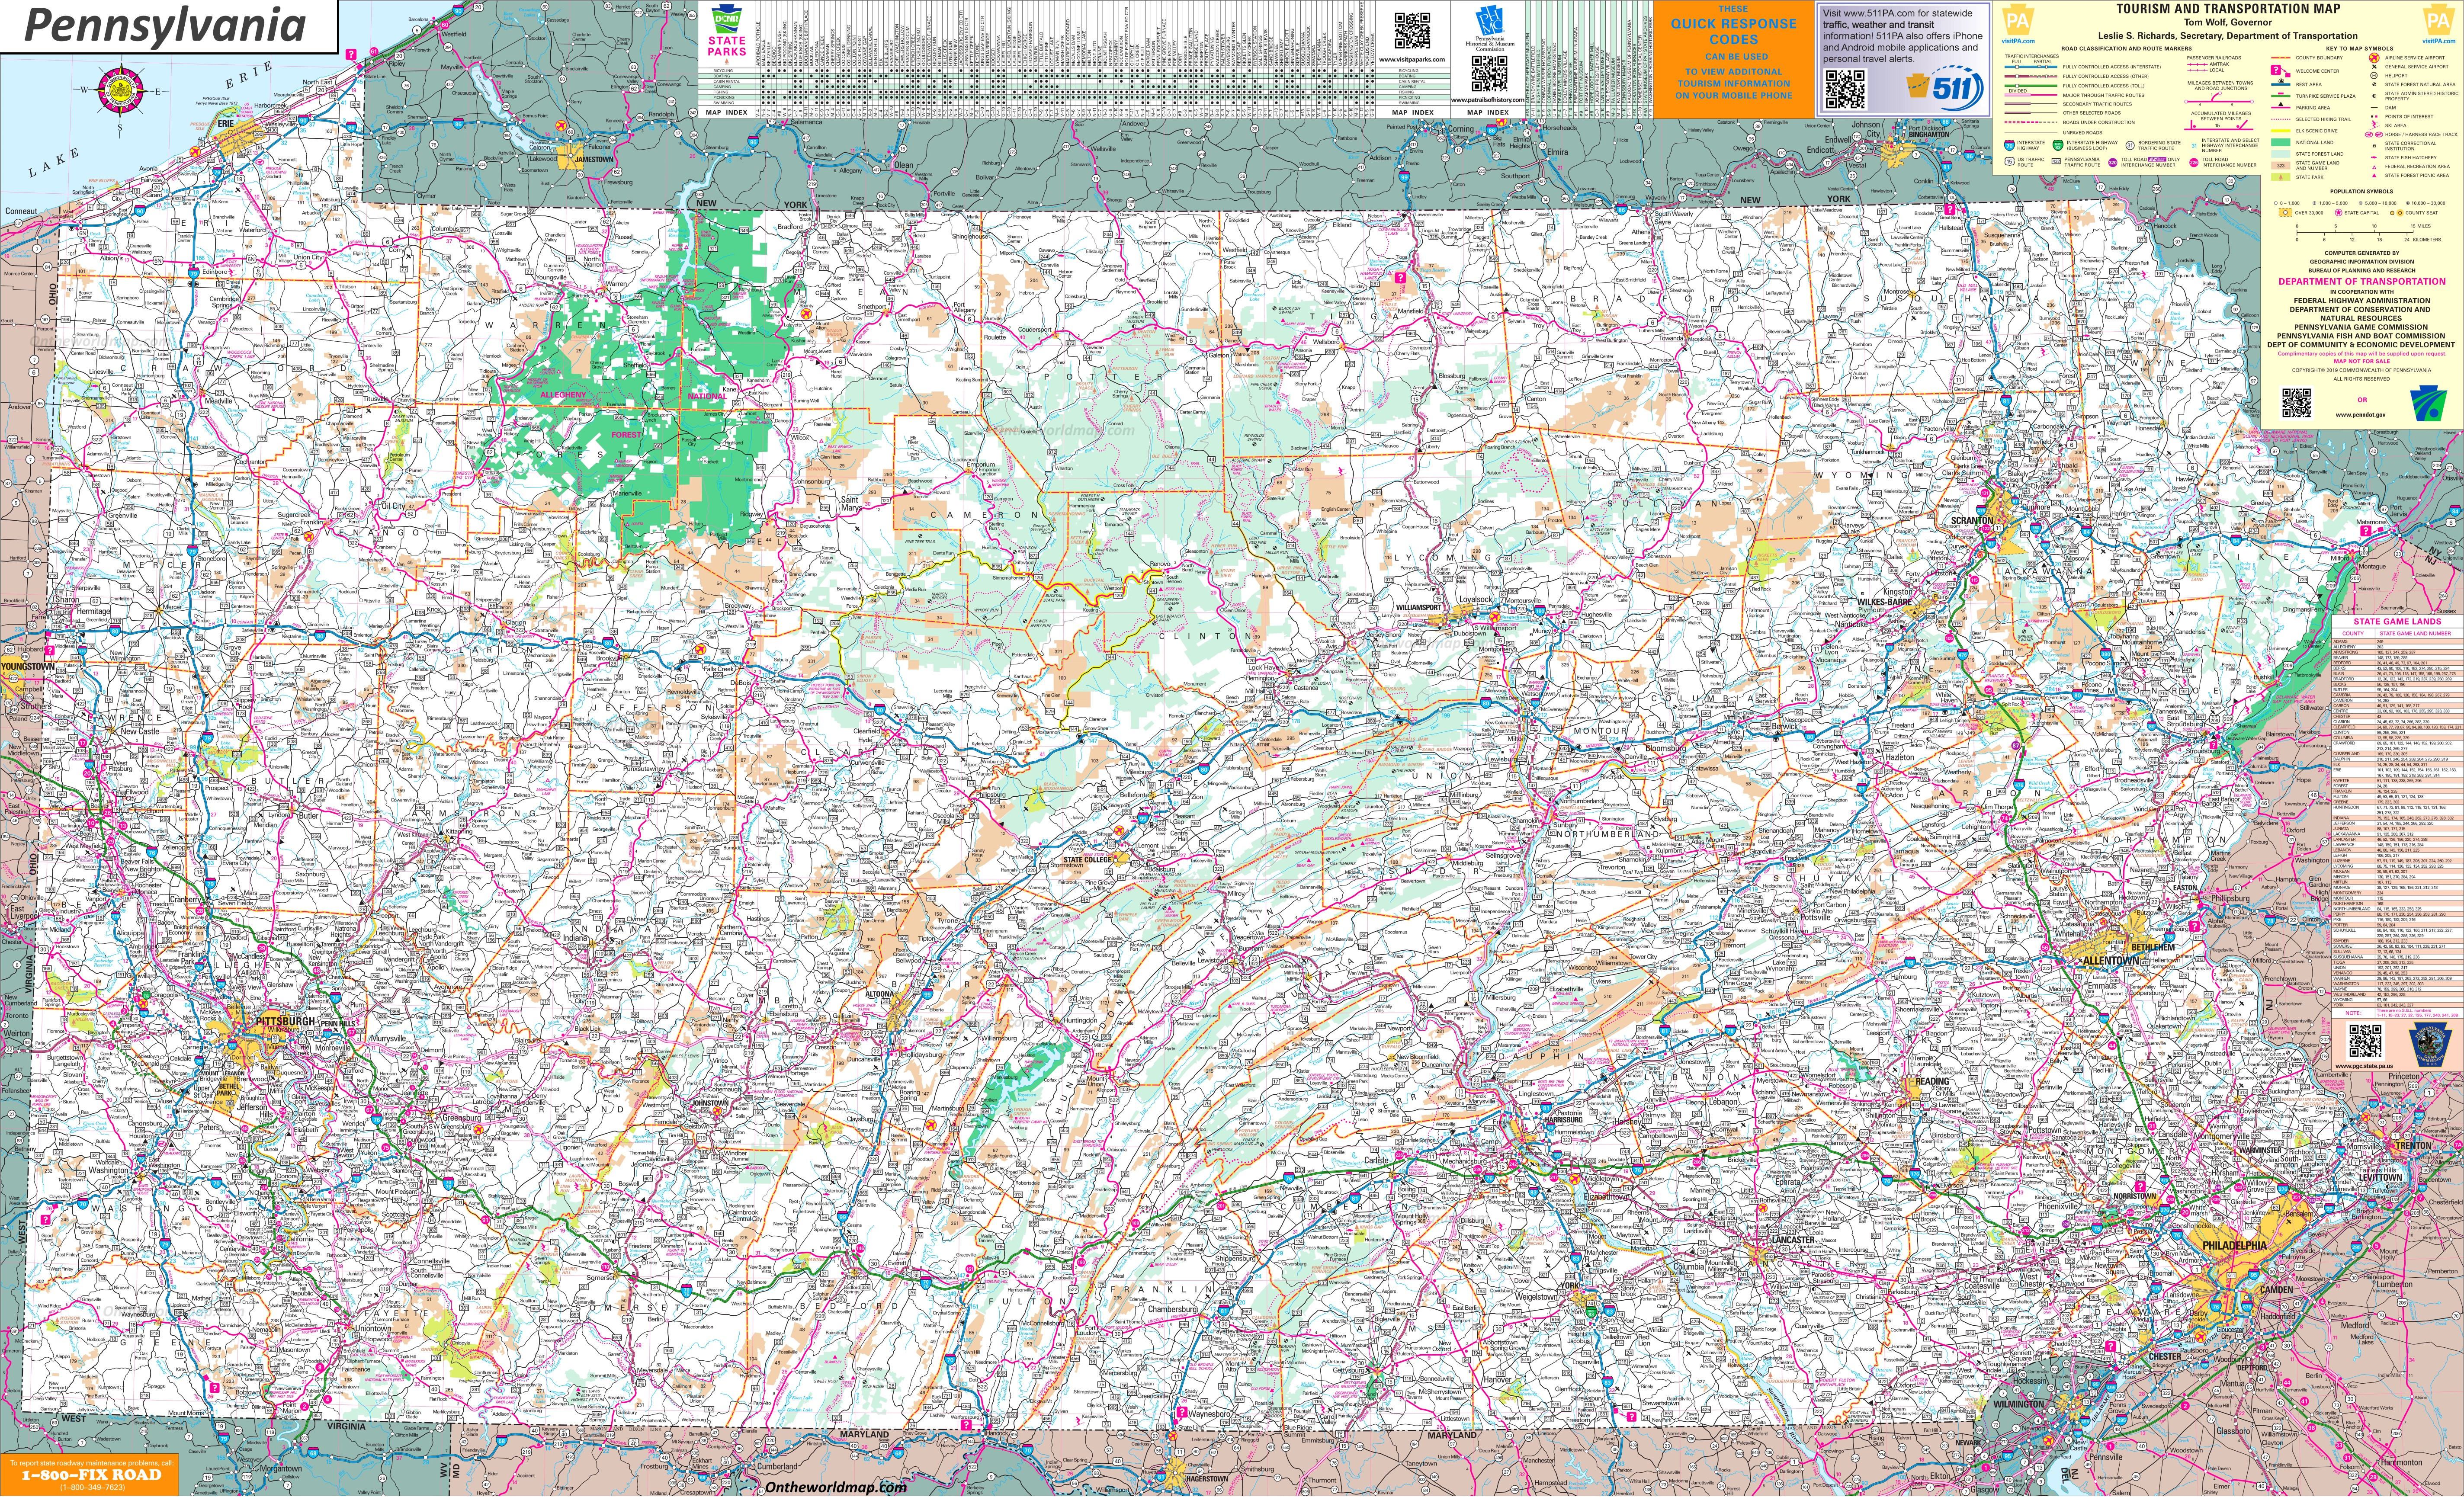 Pennsylvania State Maps USA Maps Of Pennsylvania PA - Map of largest cities in us